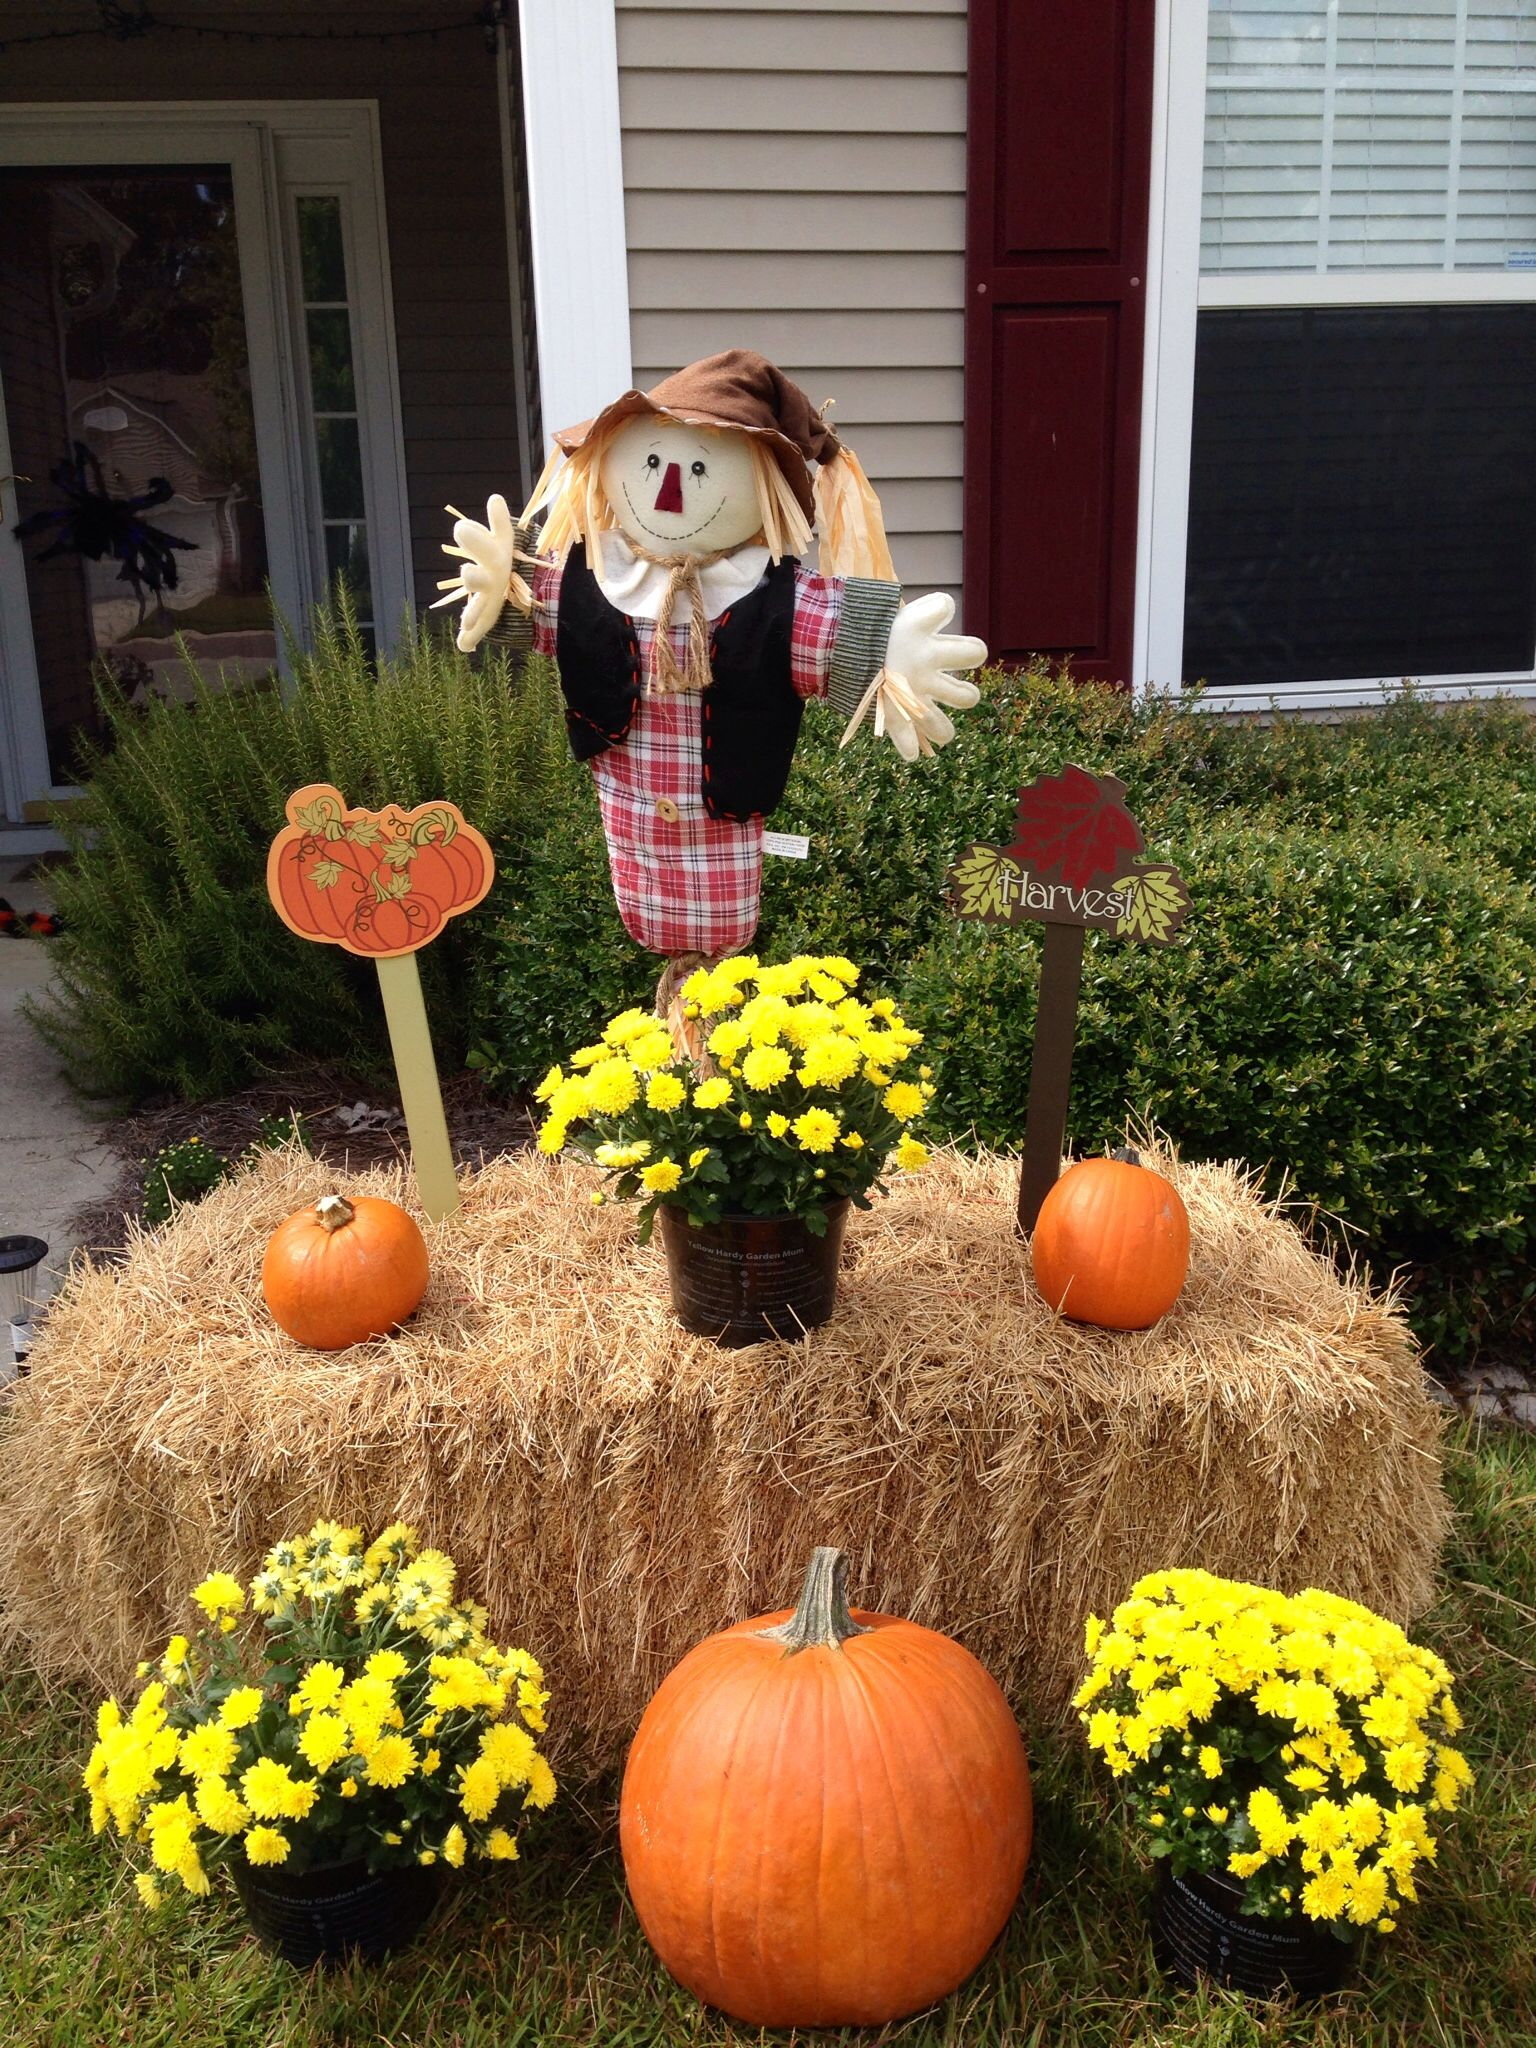 My fall yard decor yellow mums pumpkins hay bale and a Fall outdoor decorating with pumpkins